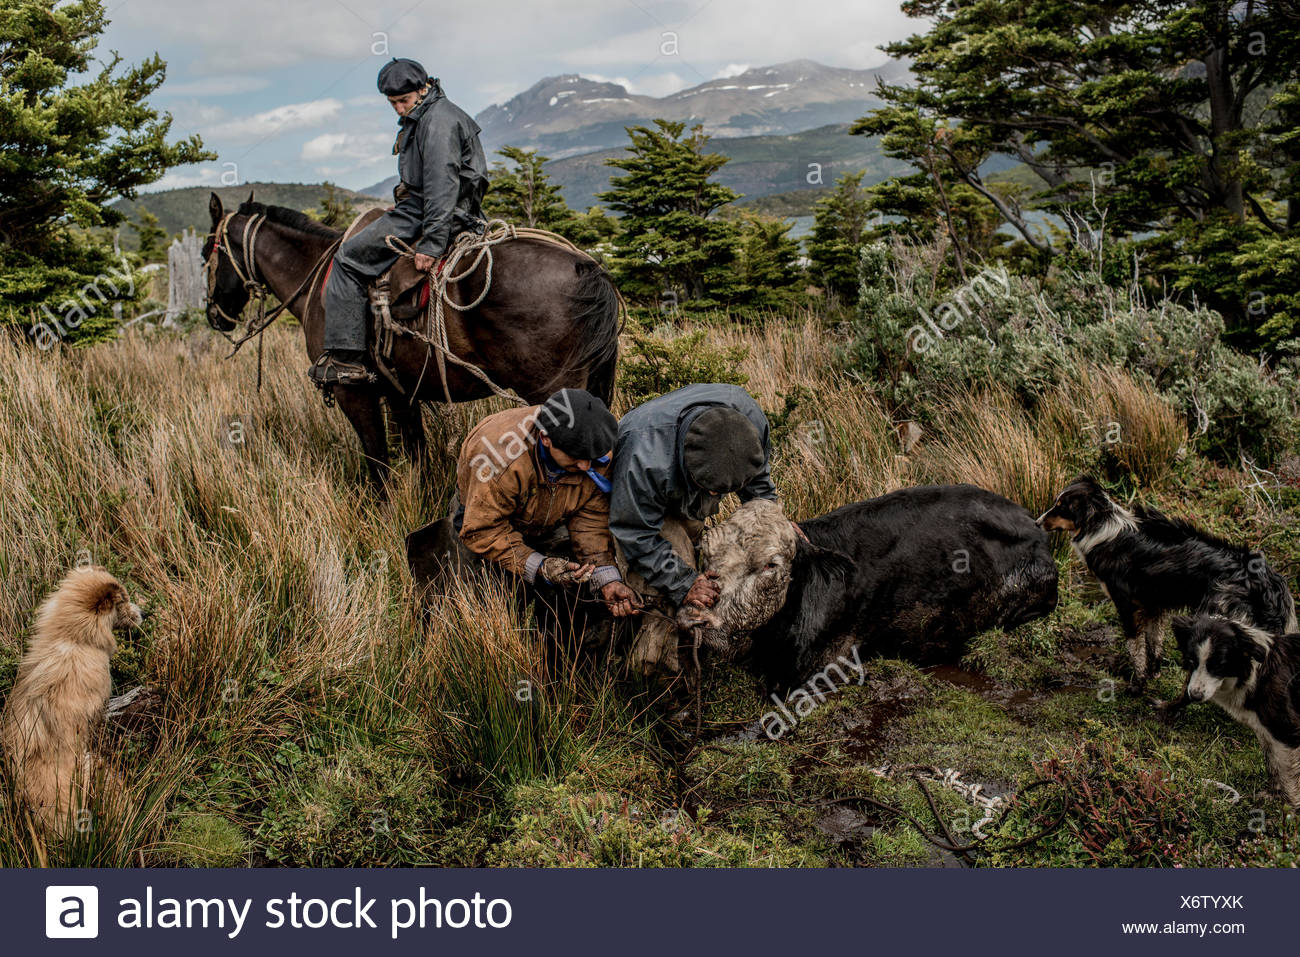 Bagualeros, cowboys who capture feral livestock, untie from a tree, a cow feral cow that was caught and tie it to a horse to be herded down. - Stock Image